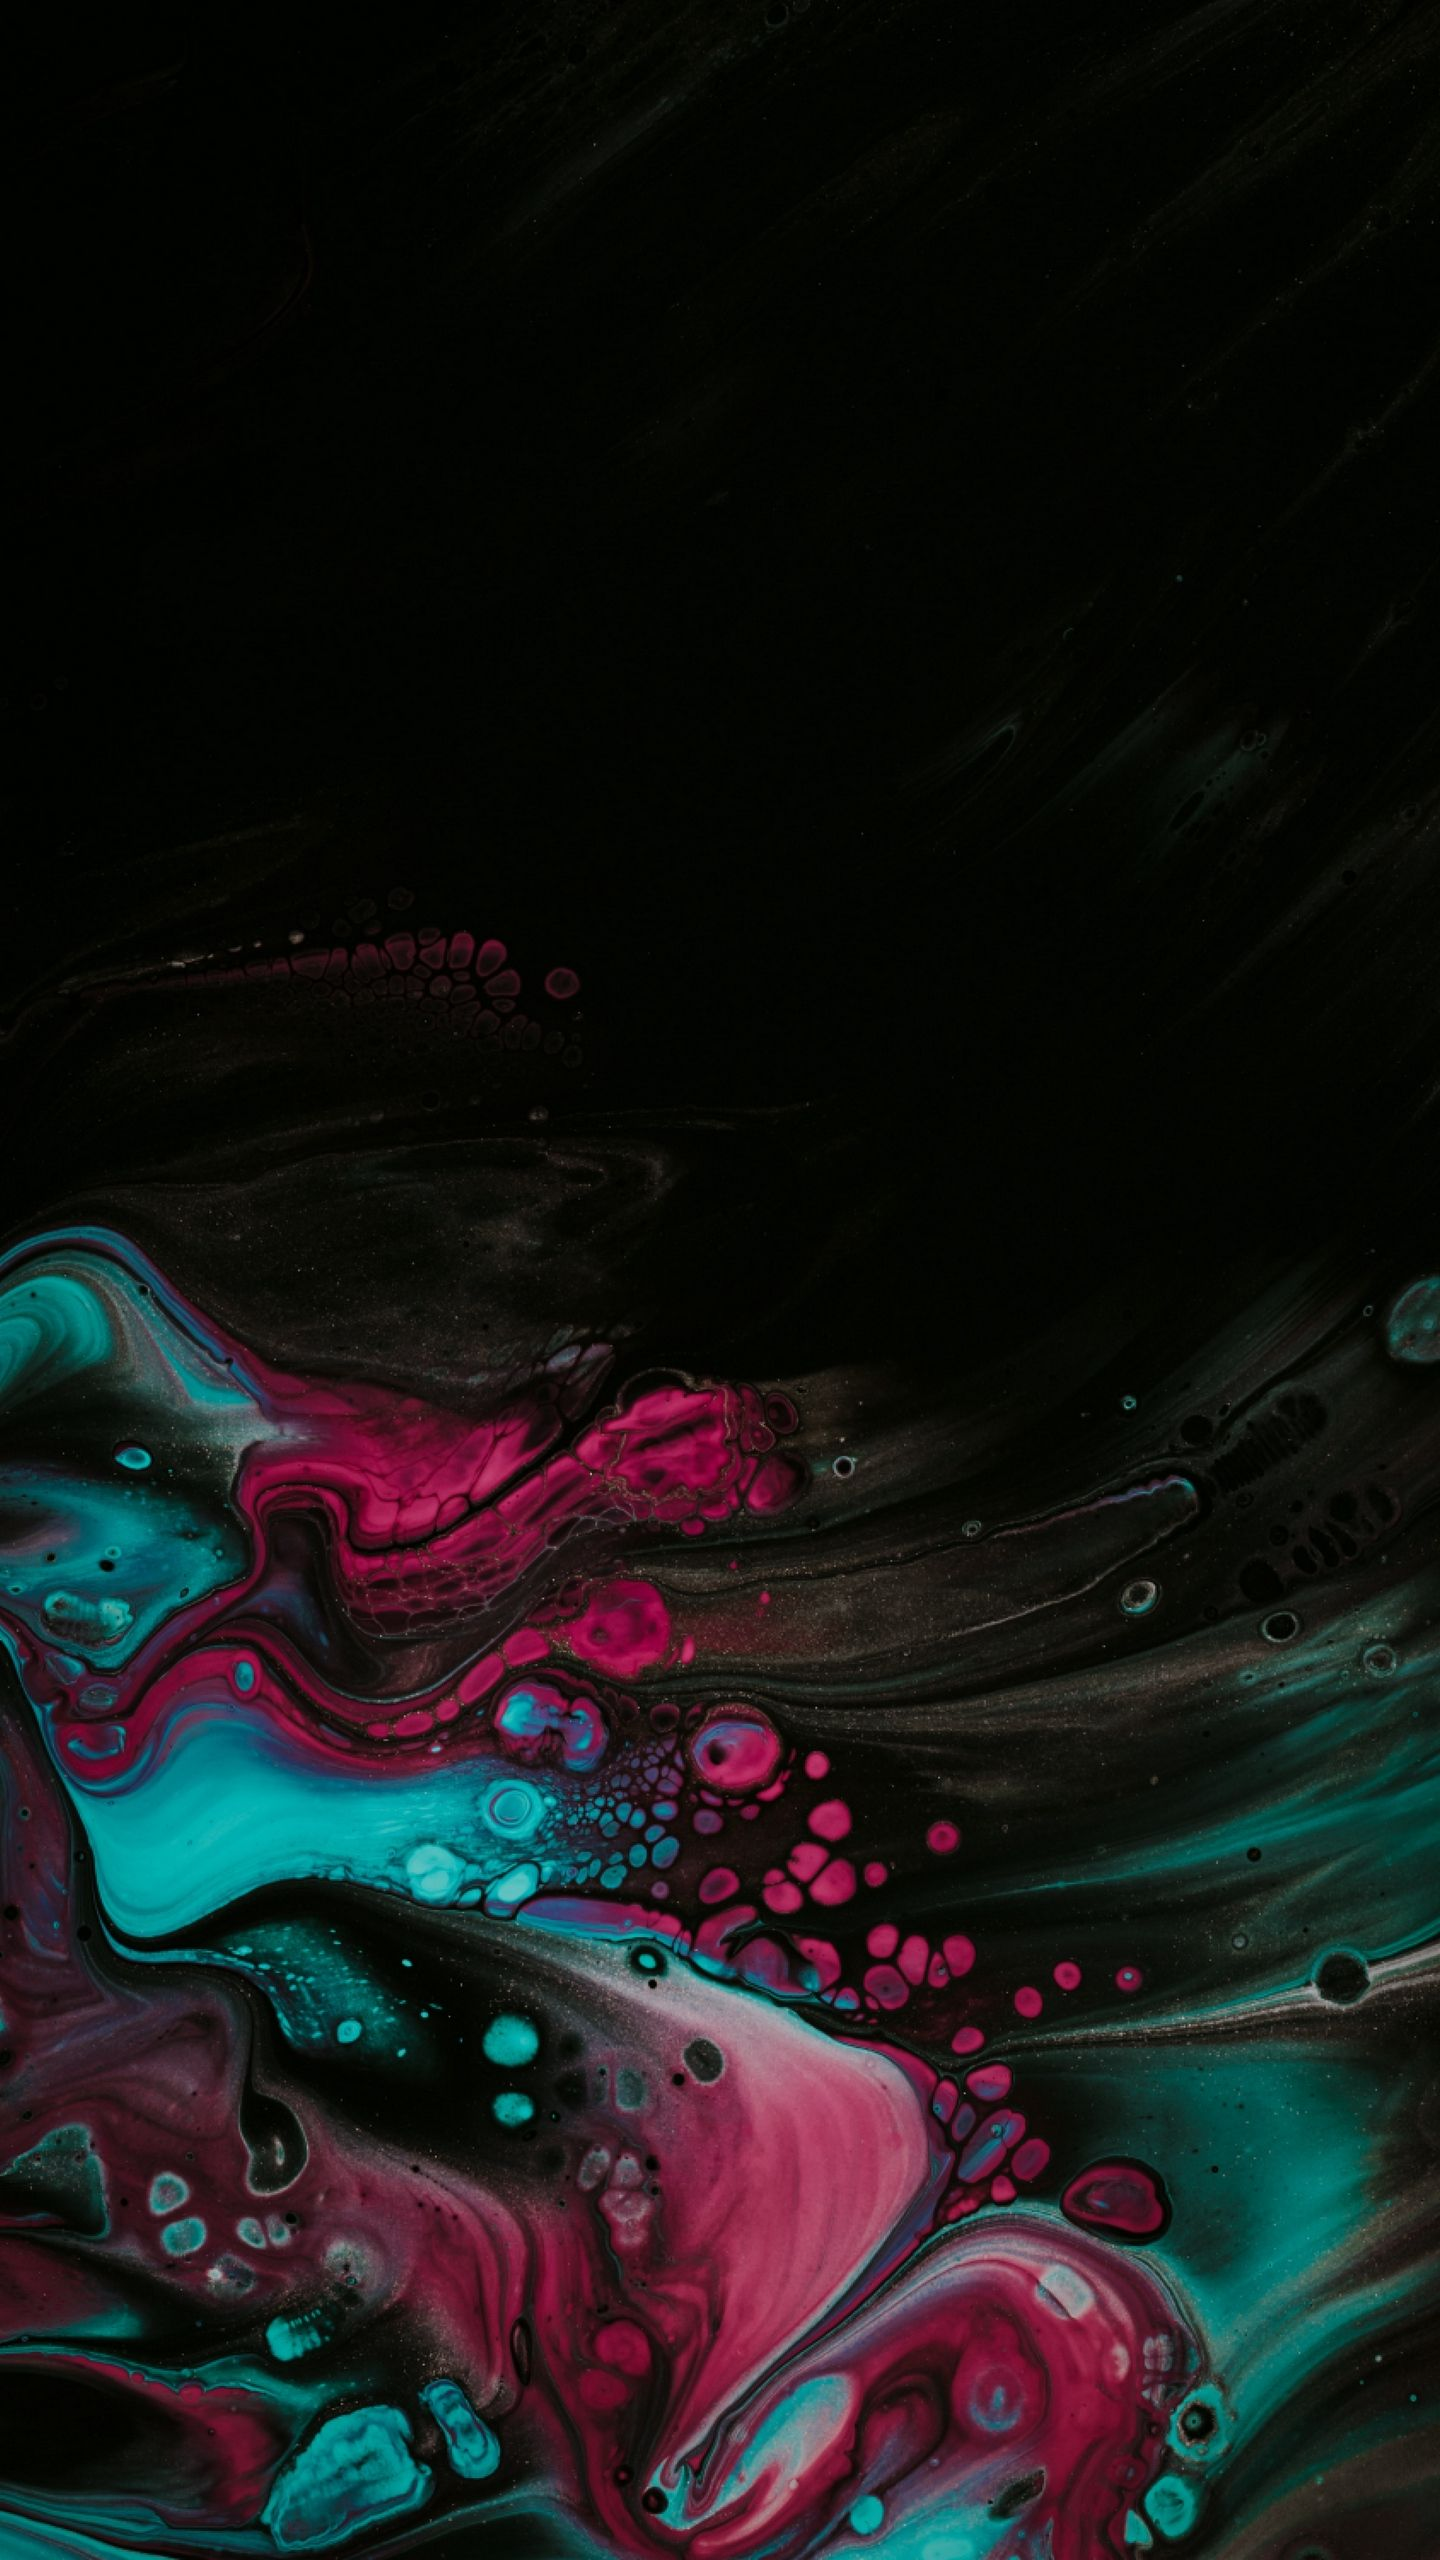 Download Wallpaper 1440x2560 Paint Spots Stains Mix Liquid Colorful Qhd Samsung Galaxy S6 S7 Edge Note Lg G4 Dark Wallpaper Graphic Wallpaper Painting